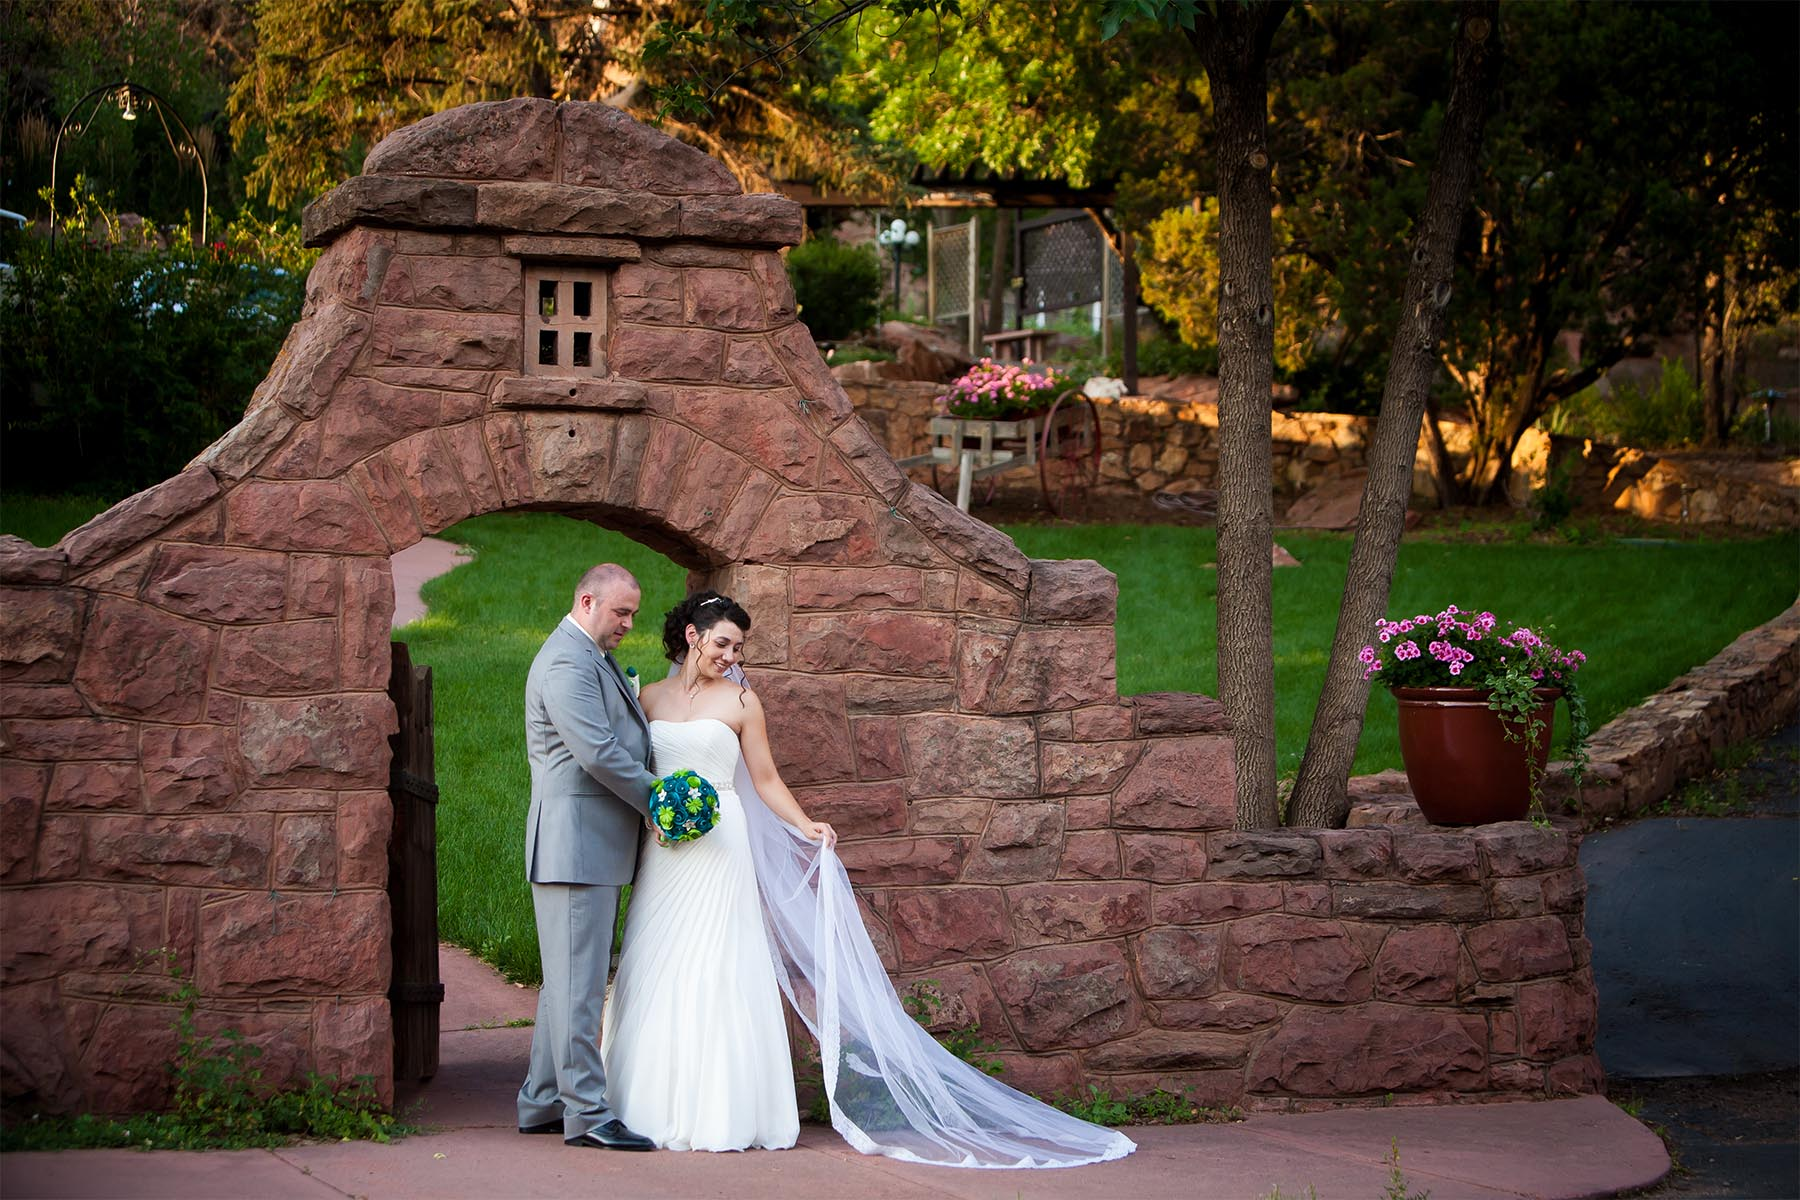 Wedding couple at the stone entrance to the Craftwood Inn.